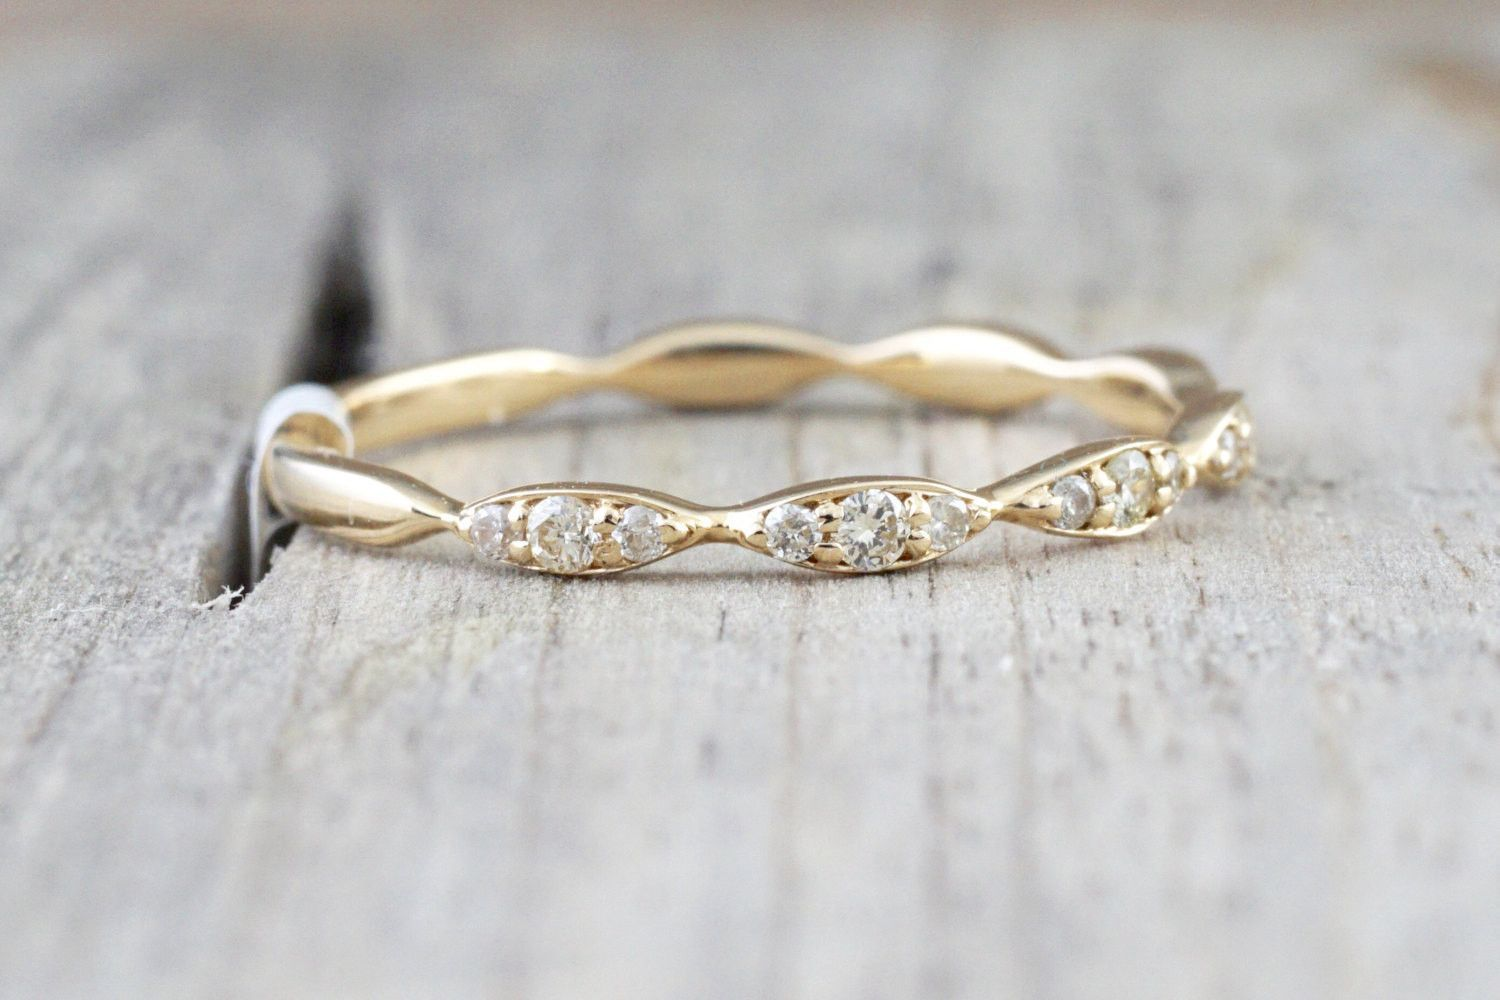 14kt Yellow Gold Diamond Ring Marquis Design Antique Crown